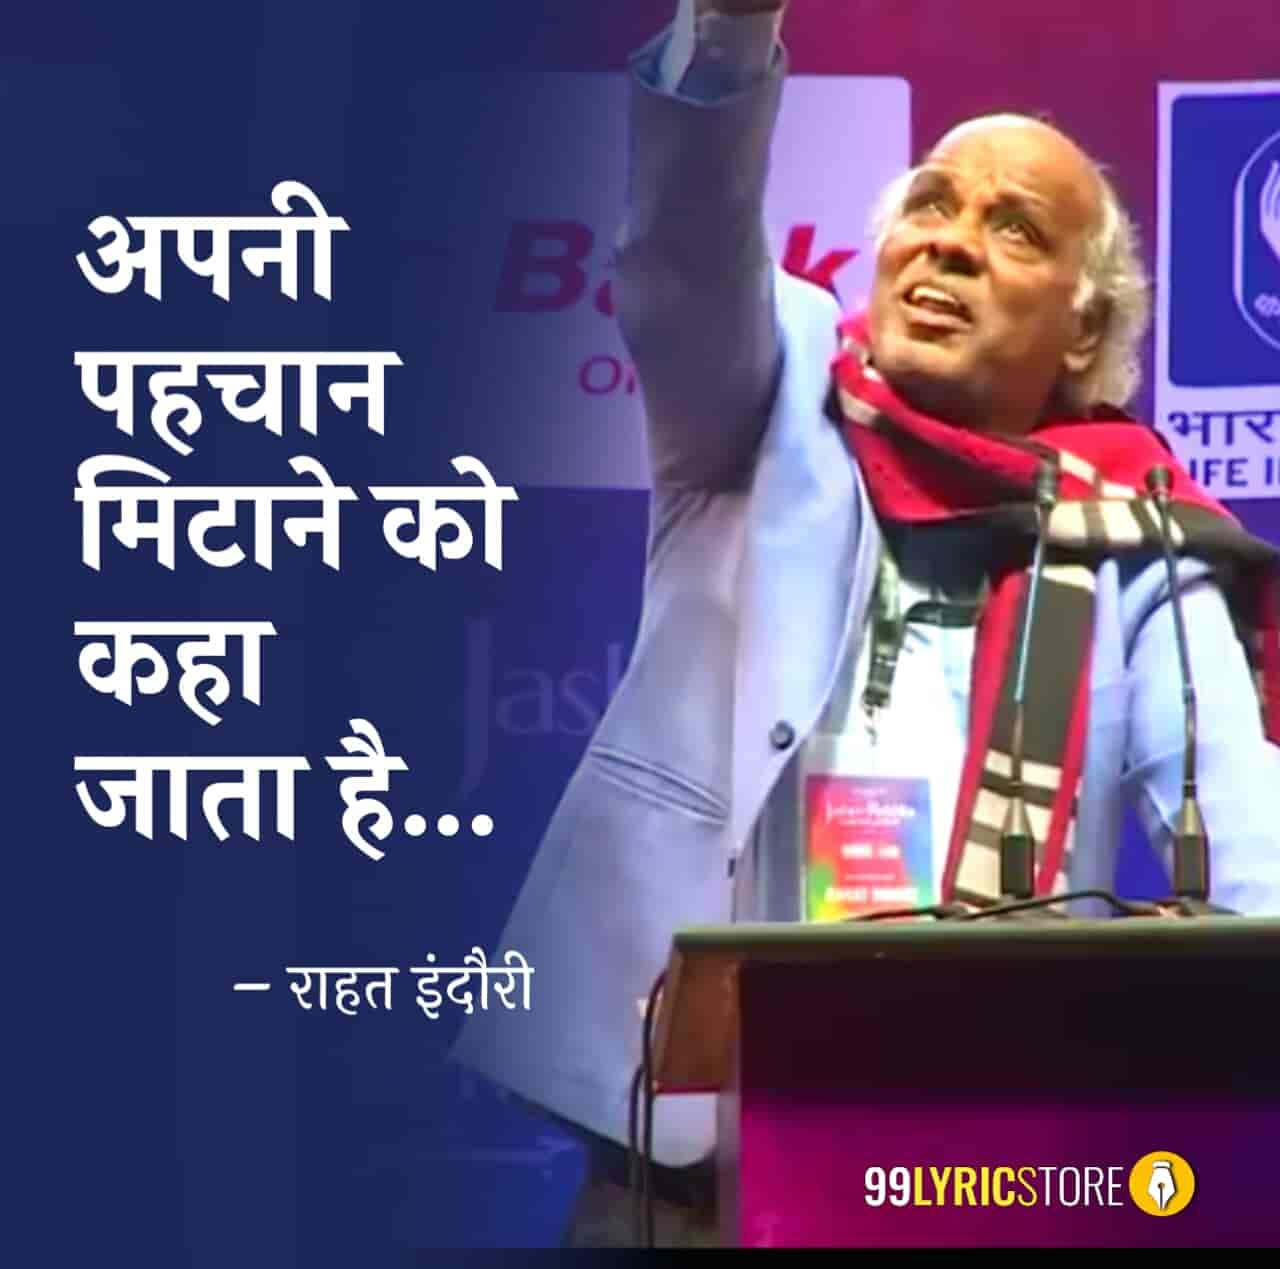 Legendary writer Rahat Indori, recently participated in the program, which celebrated the three-day festival of 'Jashn-e-Rekha' celebrating Urdu and our overall culture and delighted everyone with his magnificent Shayari.